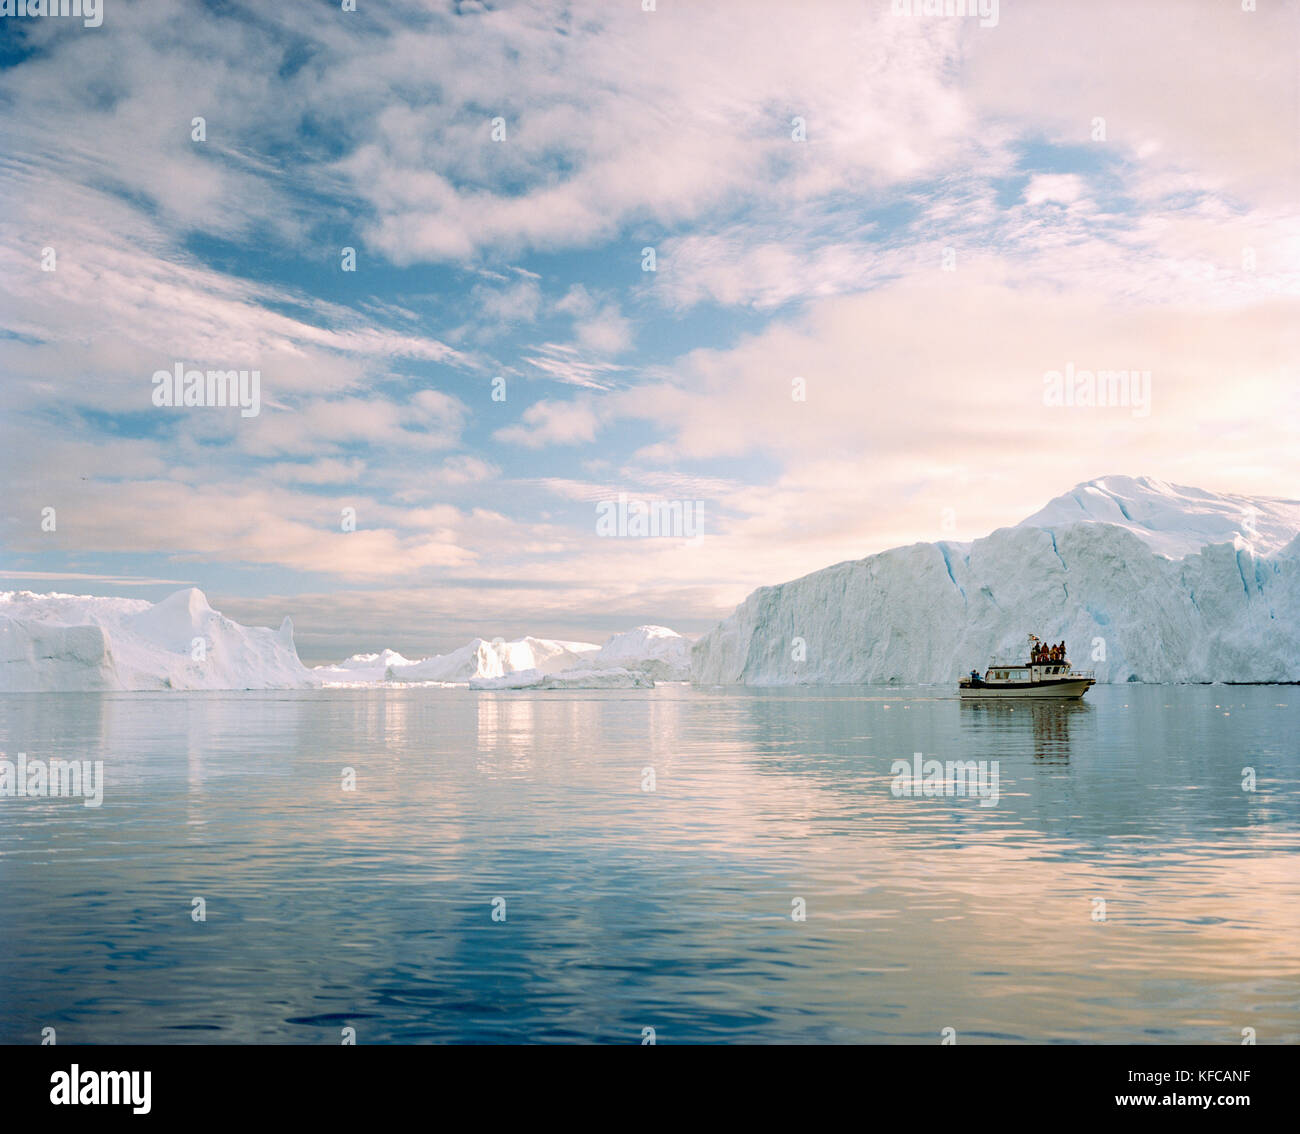 GREENLAND, Ilulissat, Ilulissat Icefjord, a tour boat during a midnight tour of the glaciers with glaciers in the - Stock Image